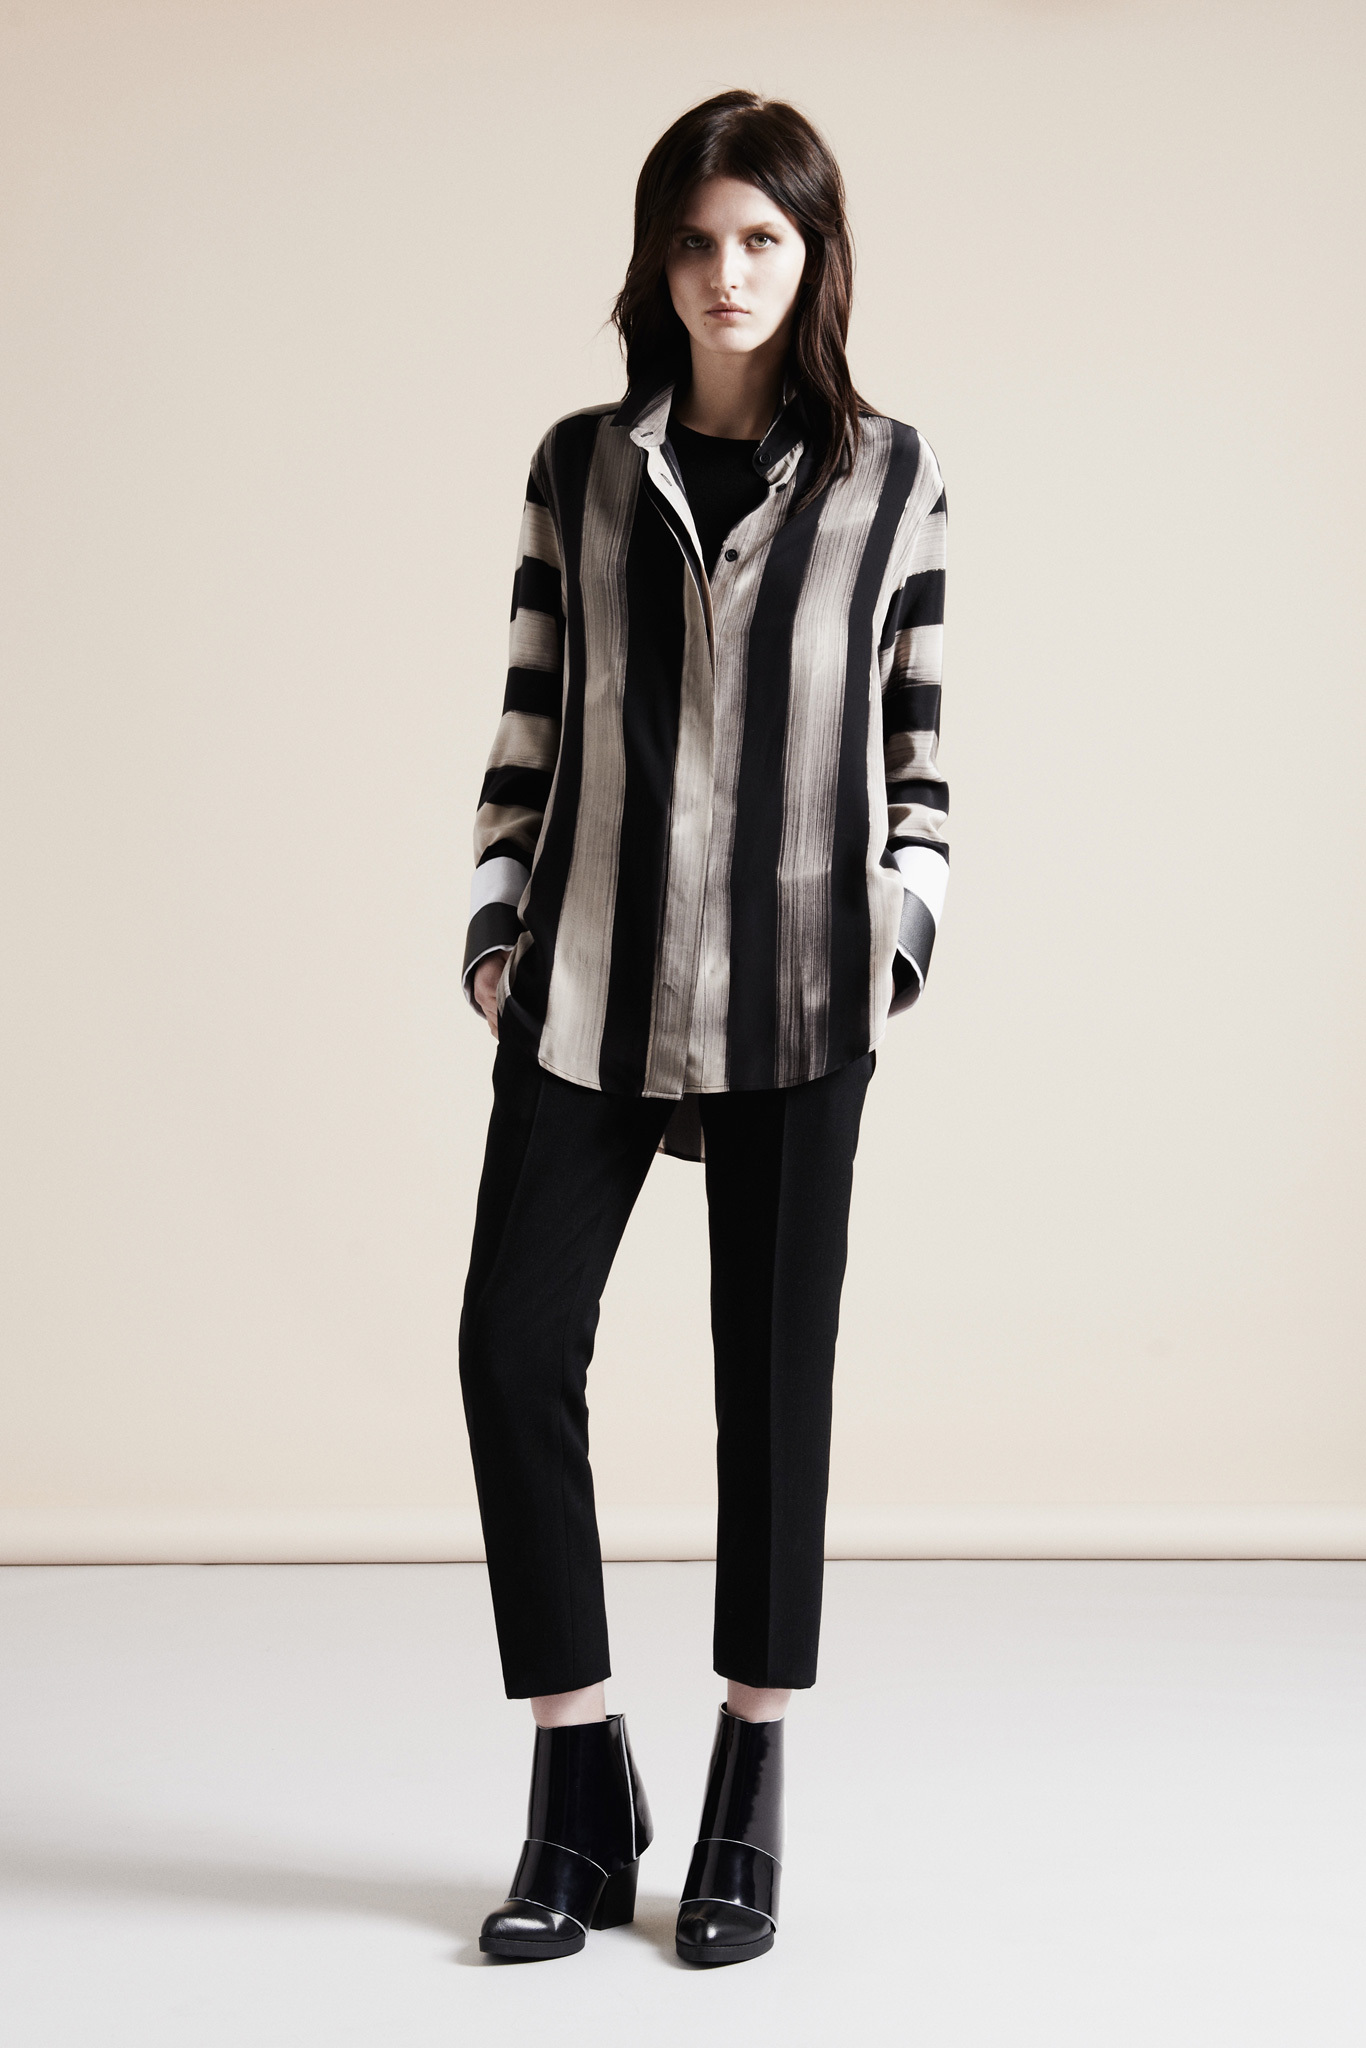 http://delbaraneh.com/wp-content/uploads/2016/10/Nicole-Farhi-Fall-Winter-2013-2014-Warm-Clothing-Women-1.jpg